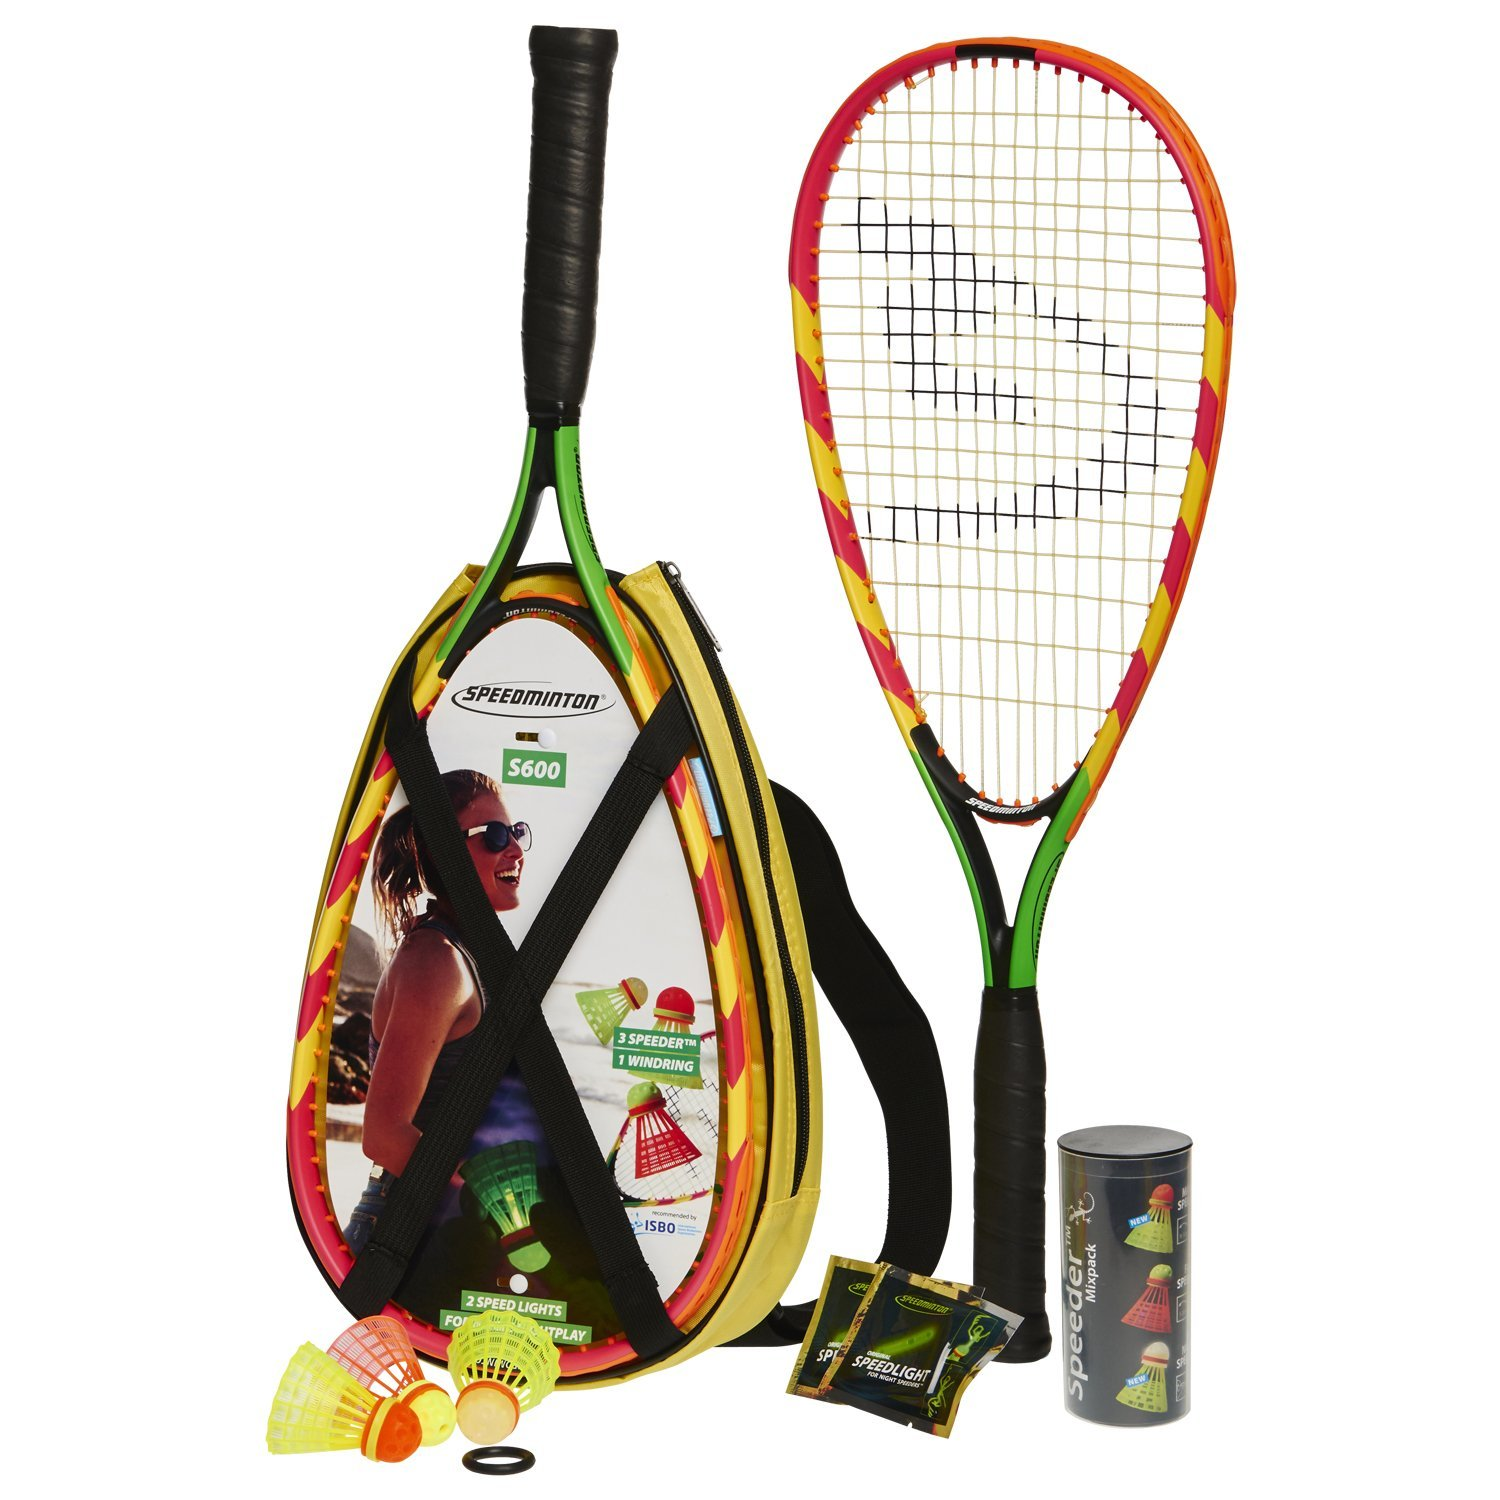 Speedminton S600 Set - Original Speed ​​Badminton / Crossminton Starter Set including 2 rackets, 3 Speeder, Speedlights, Bag